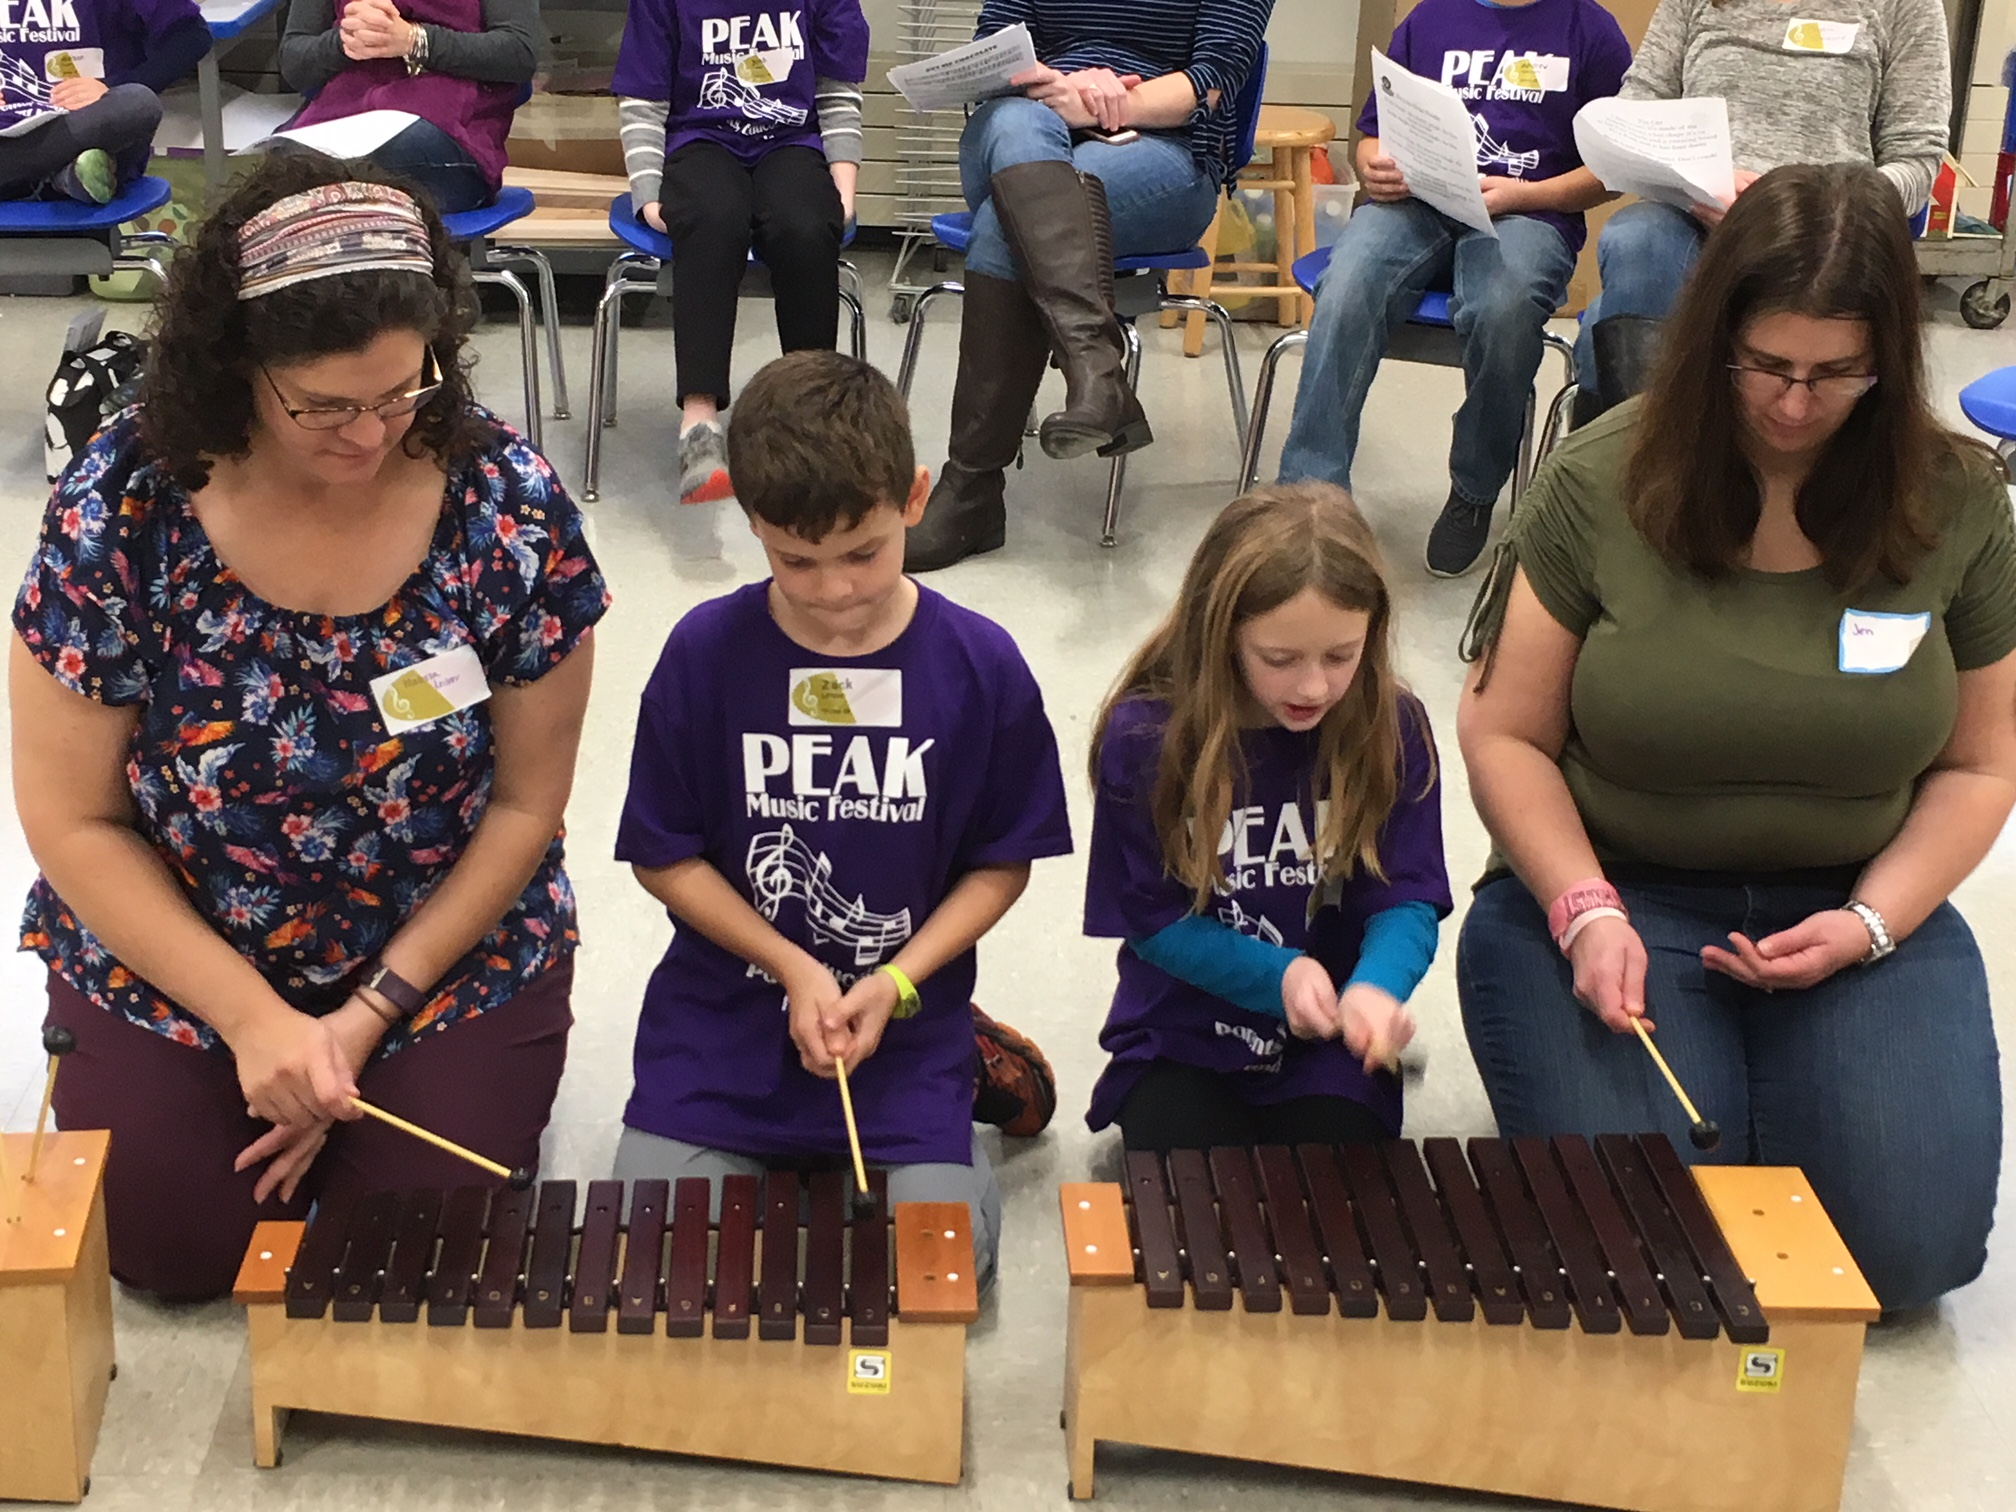 2 students and 2 parents learn to play to xlephone